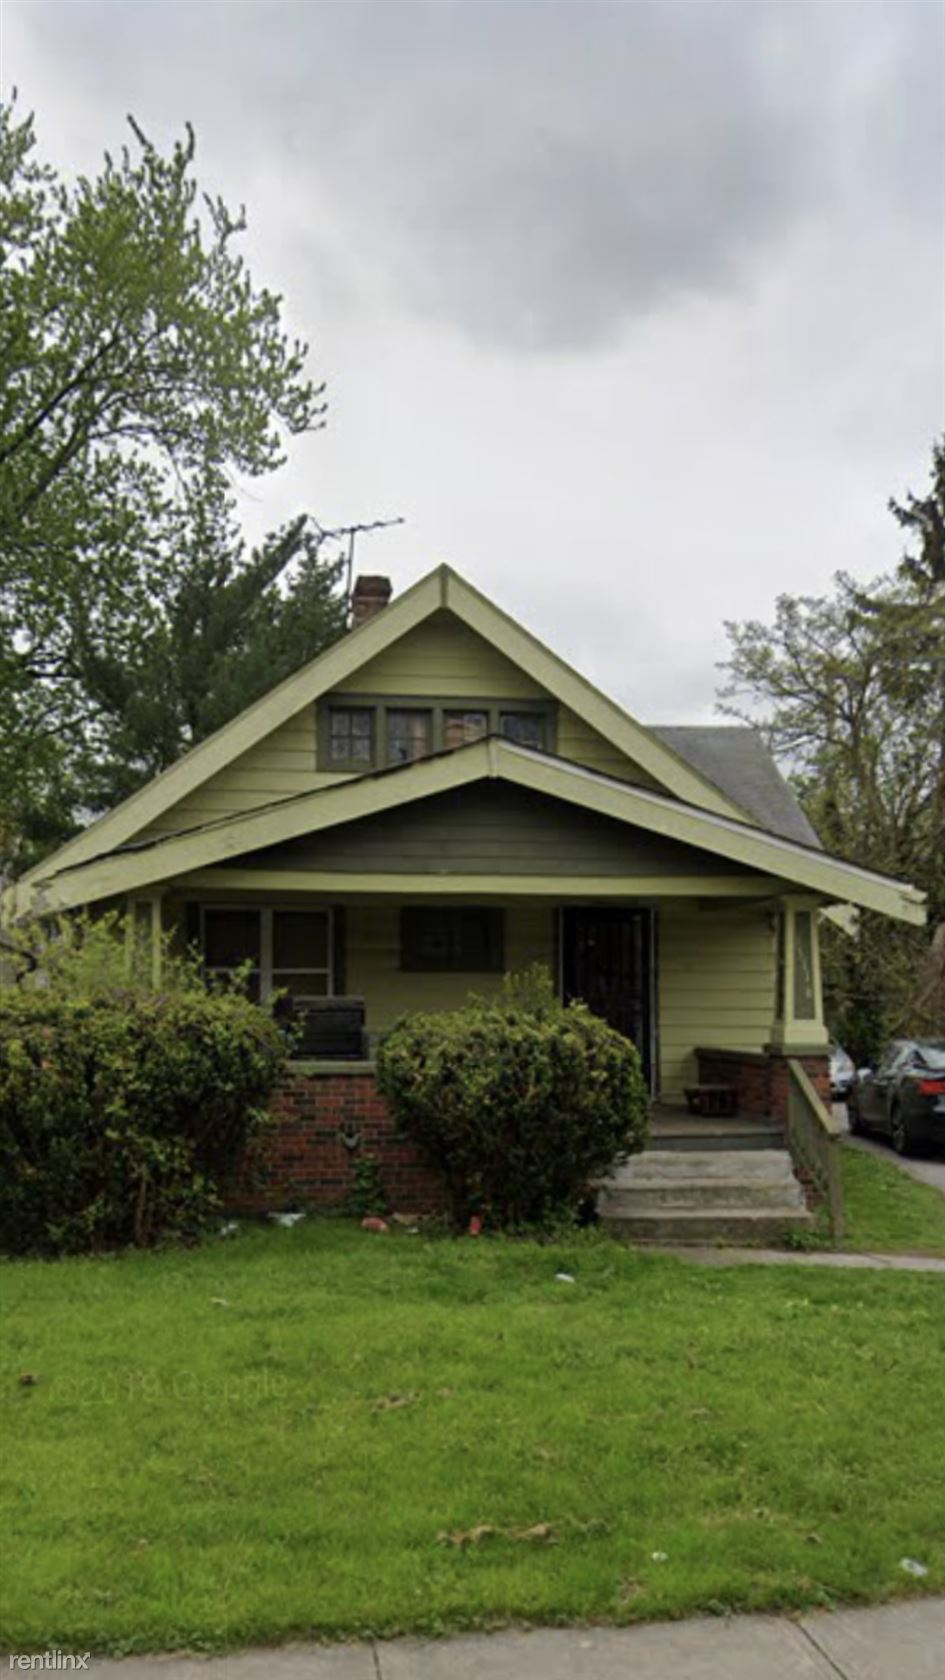 13116 Rexwood Ave, Garfield Heights, OH - $925